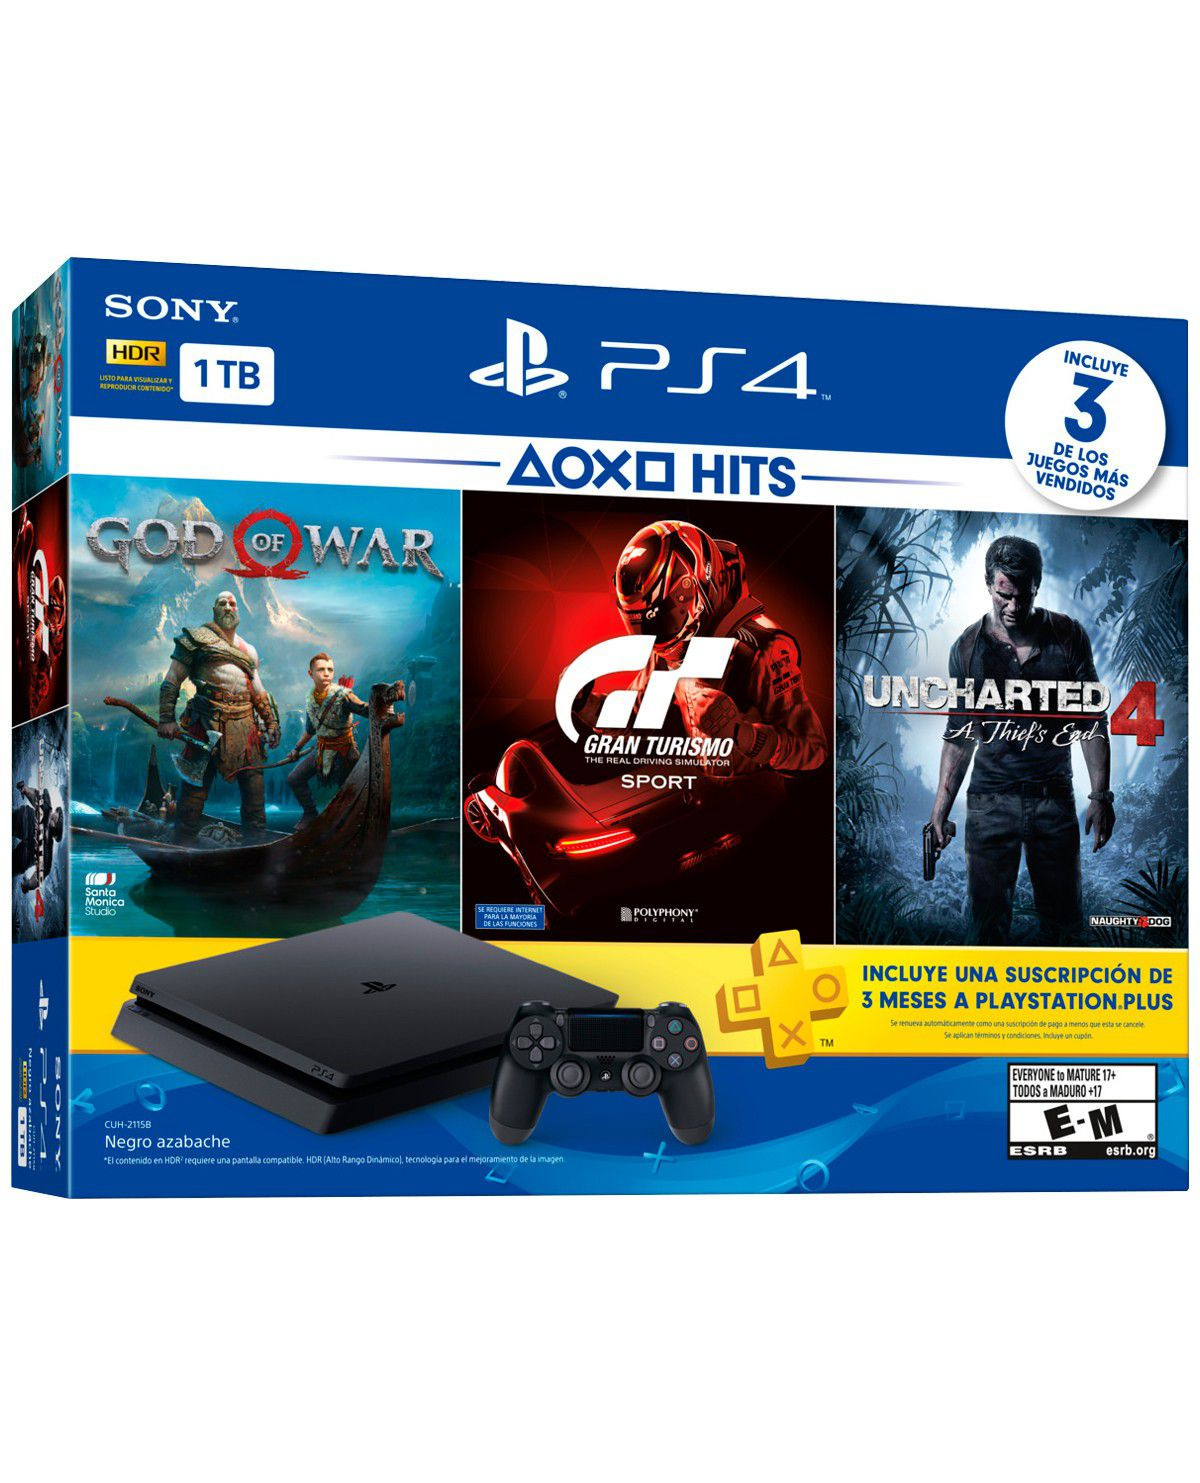 Playstation 4 Slim - 1 Terabyte + 4 Jogos (God of War + Gran Turismo + Uncharted 4 + Fifa 18) (2 Controles)